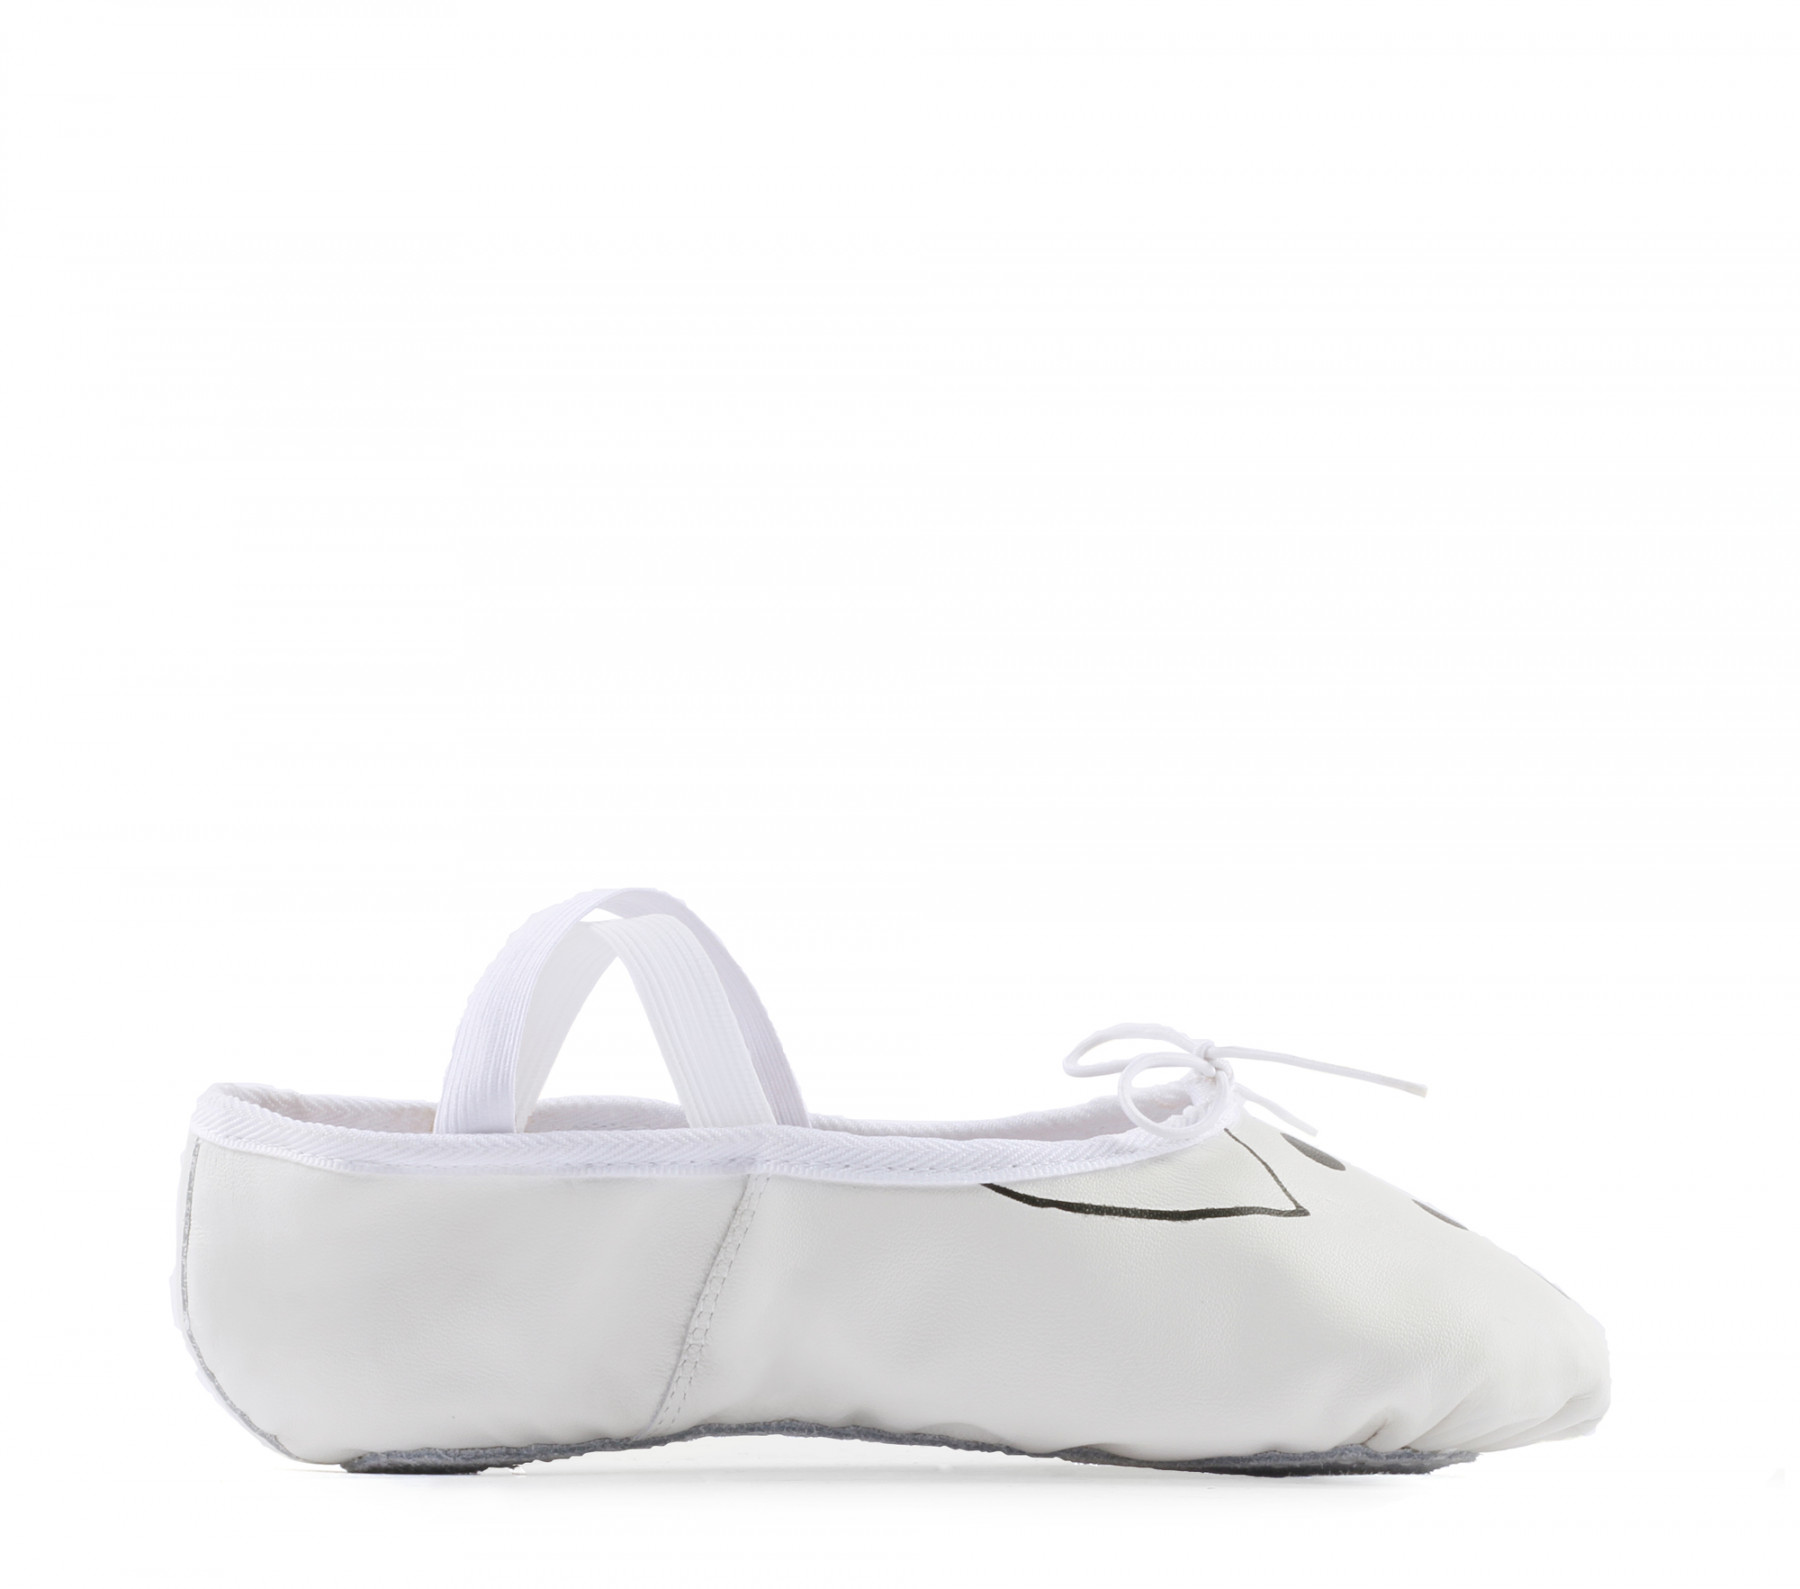 Soft ballet shoes by SIA